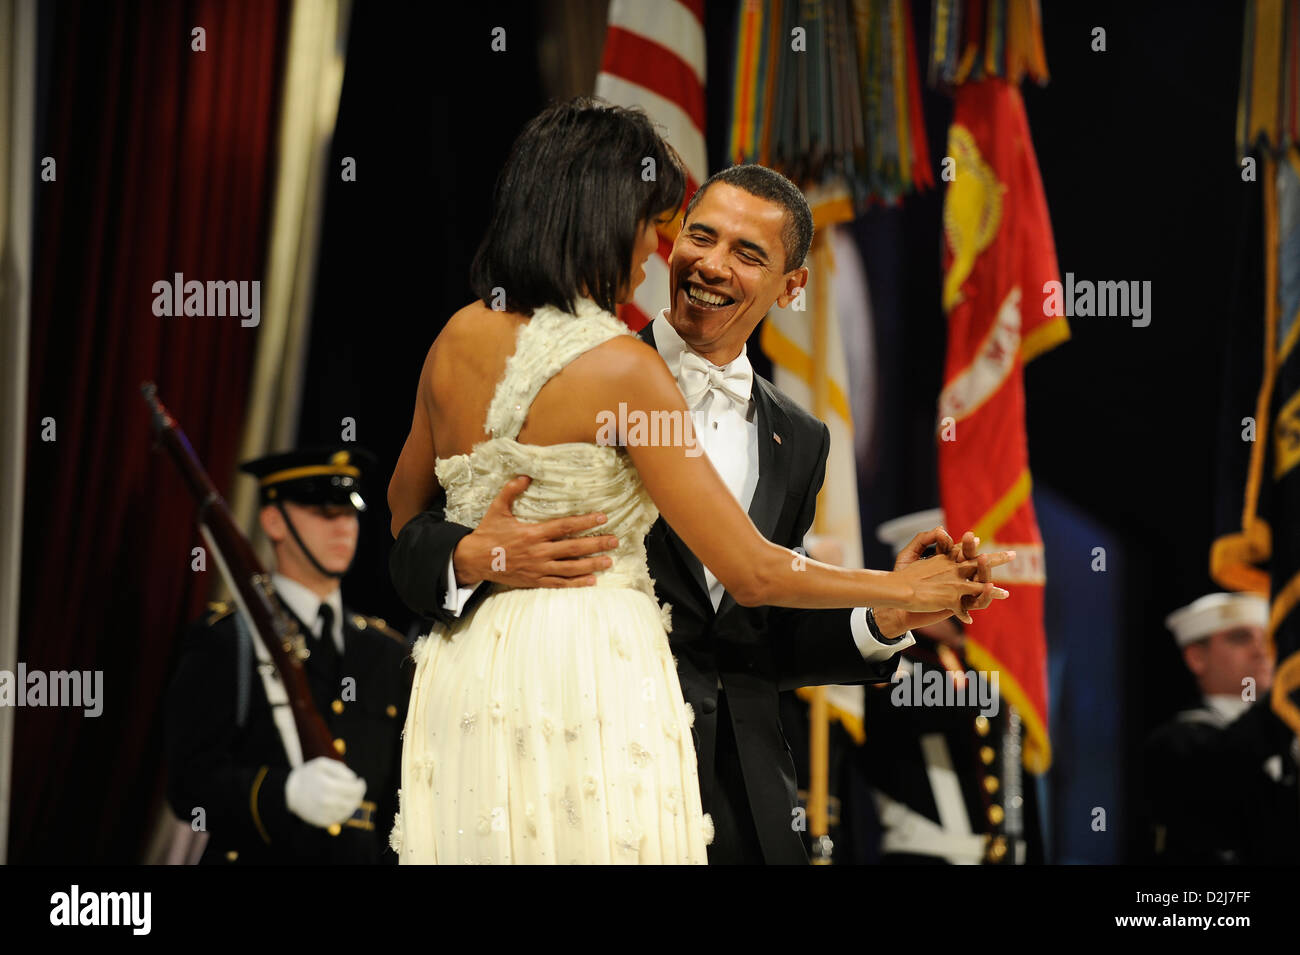 President Barack Obama and First Lady Michelle Obama dance at the Mid-Atlantic Ball in Washington, DC January 20, - Stock Image